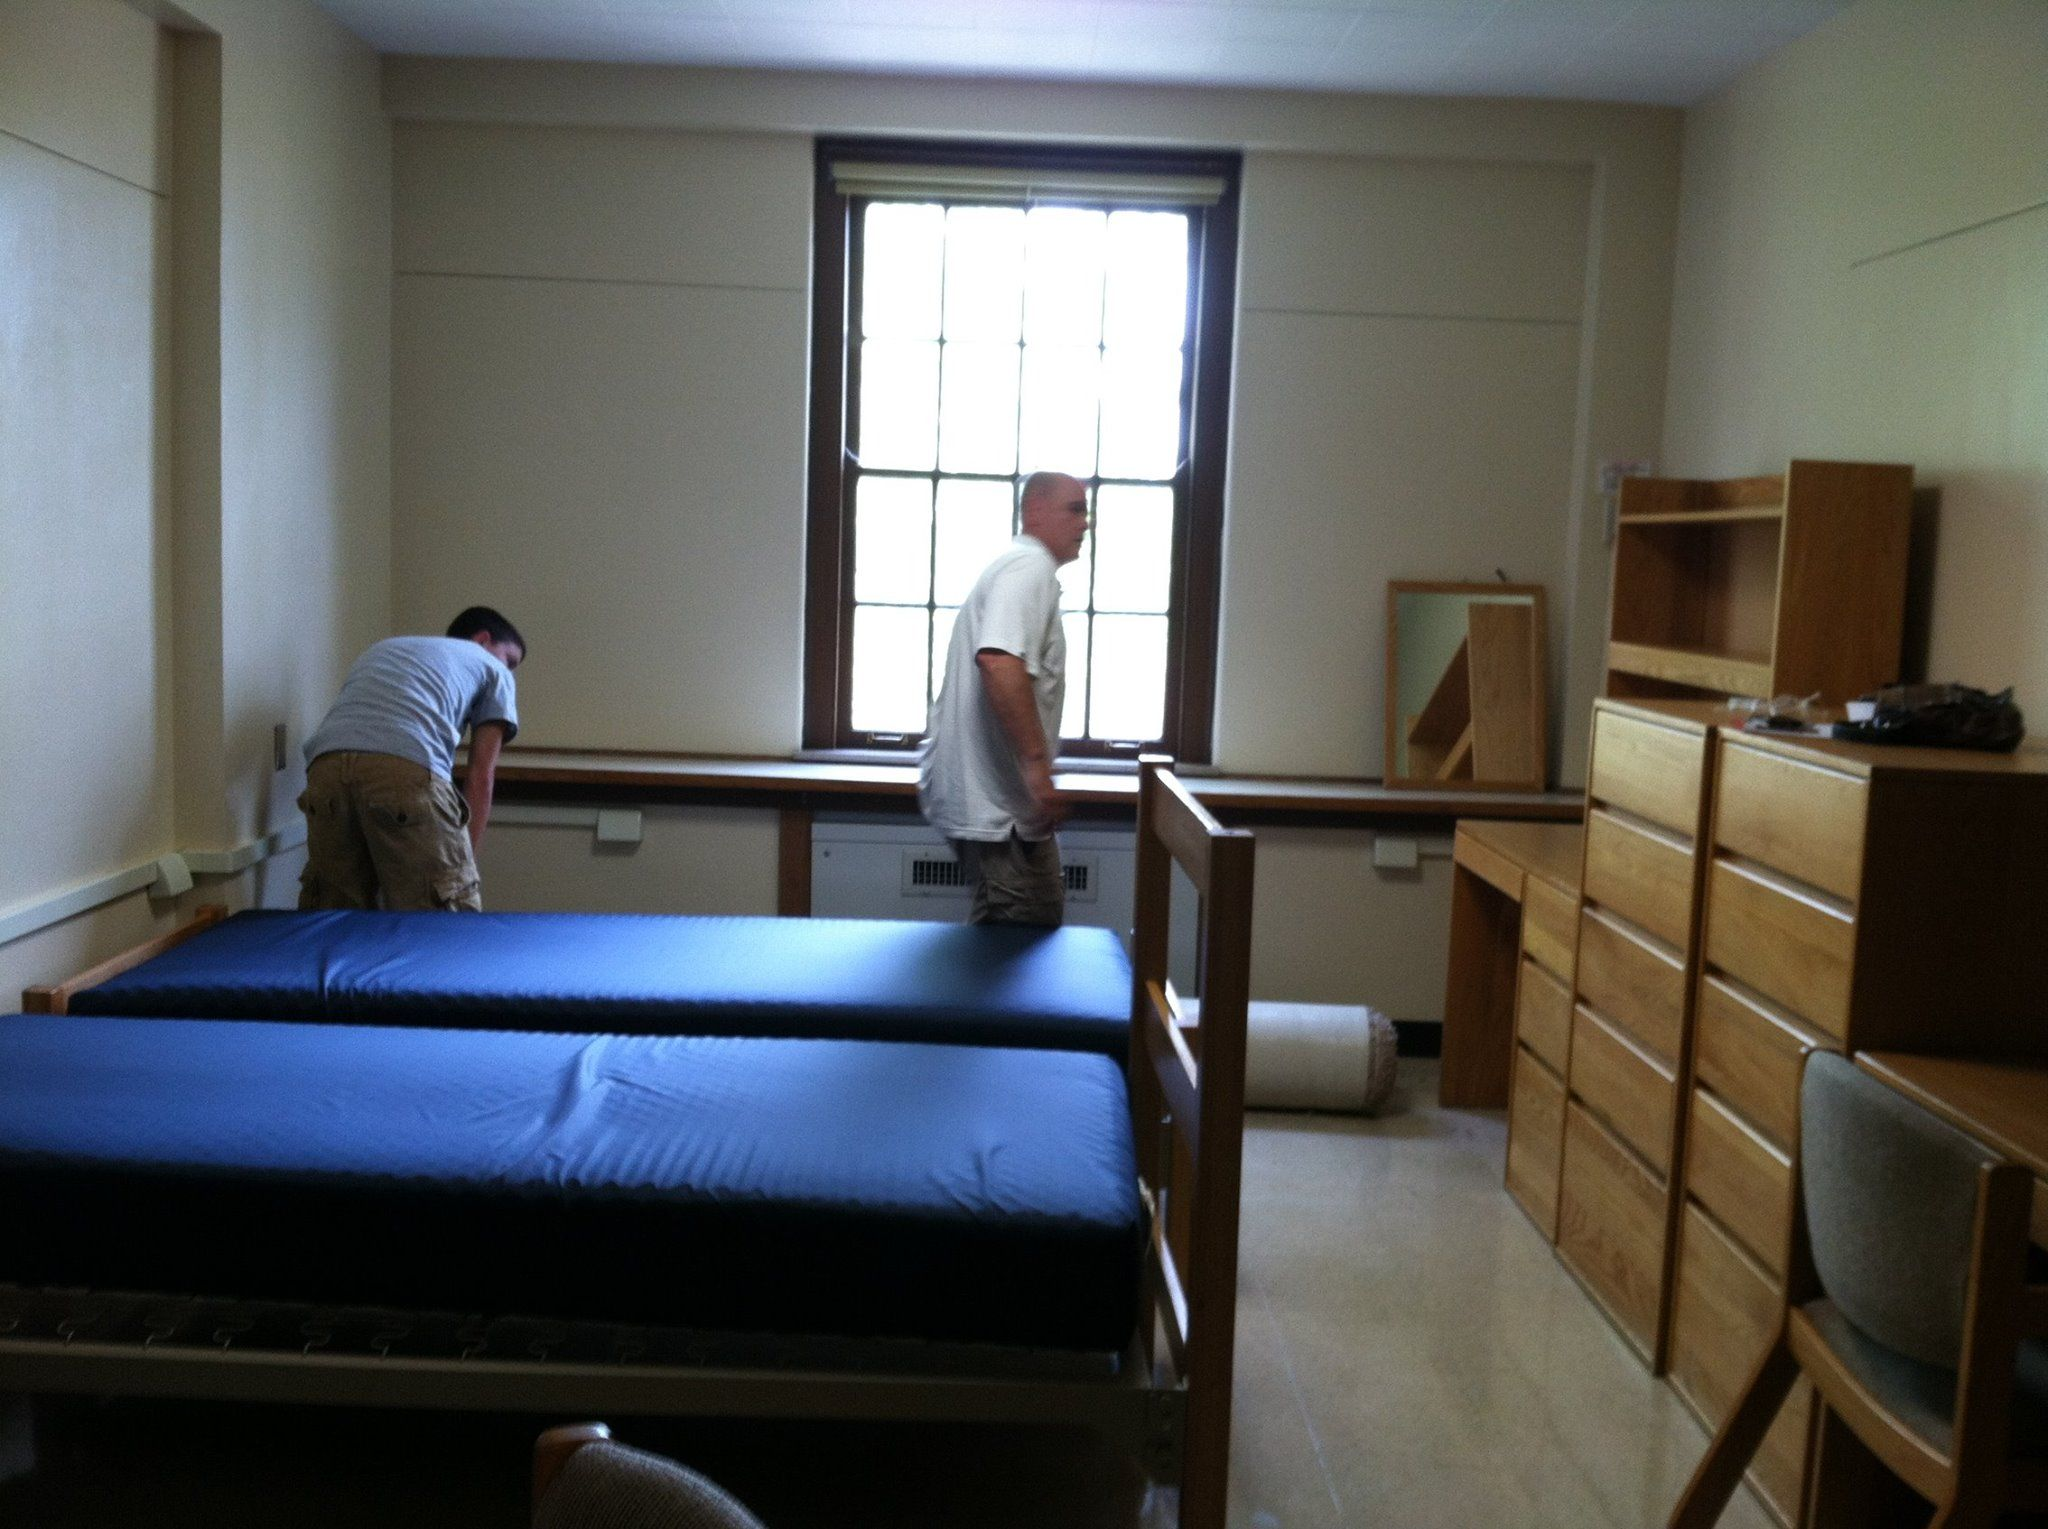 Dorm room furniture layout - Initial Layout And Furniture See After Pic